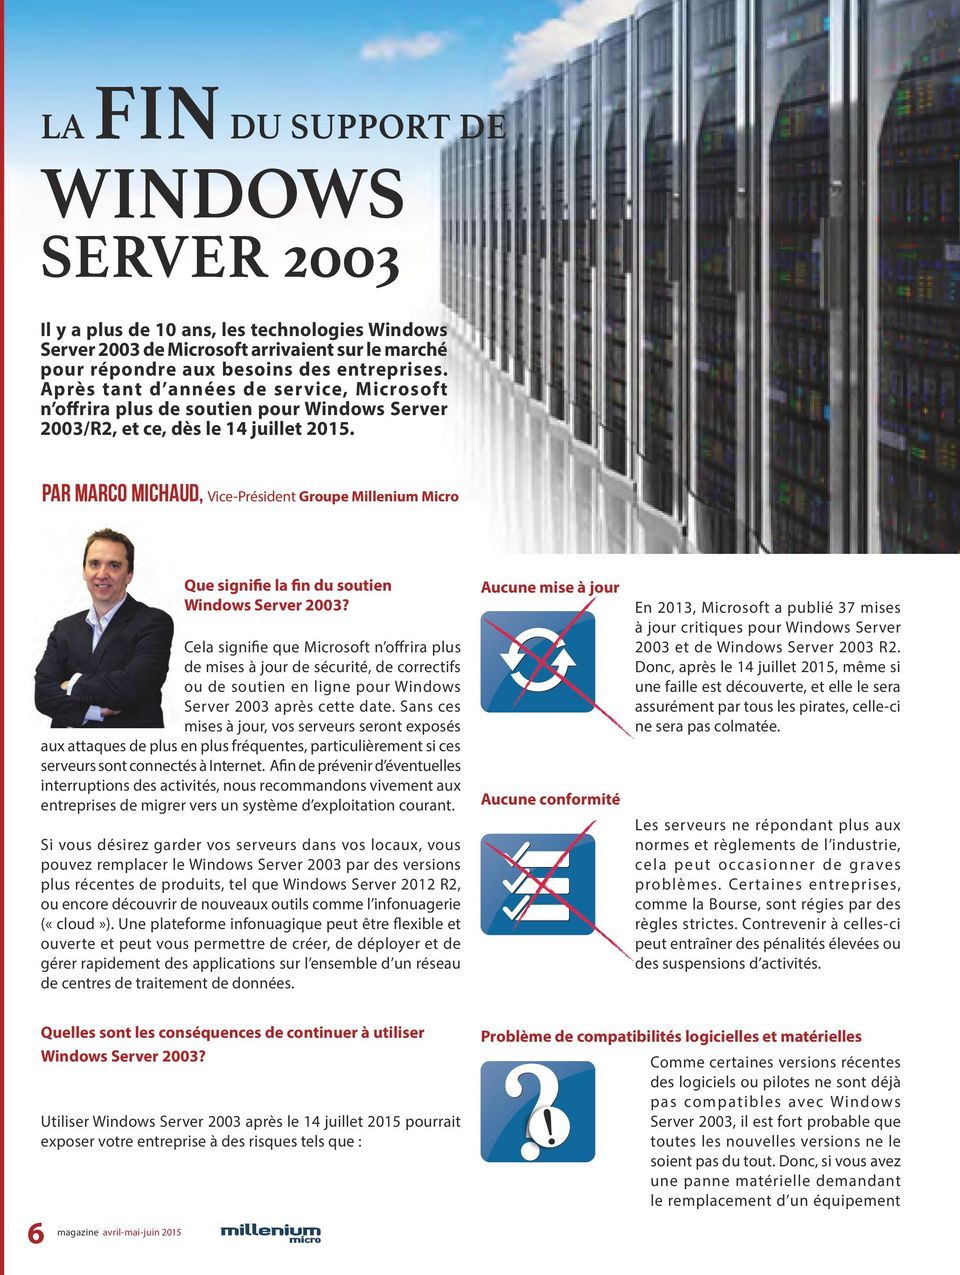 Par marco michaud, Vice-Président Groupe Millenium Micro Que signifie la fin du soutien Windows Server 2003?